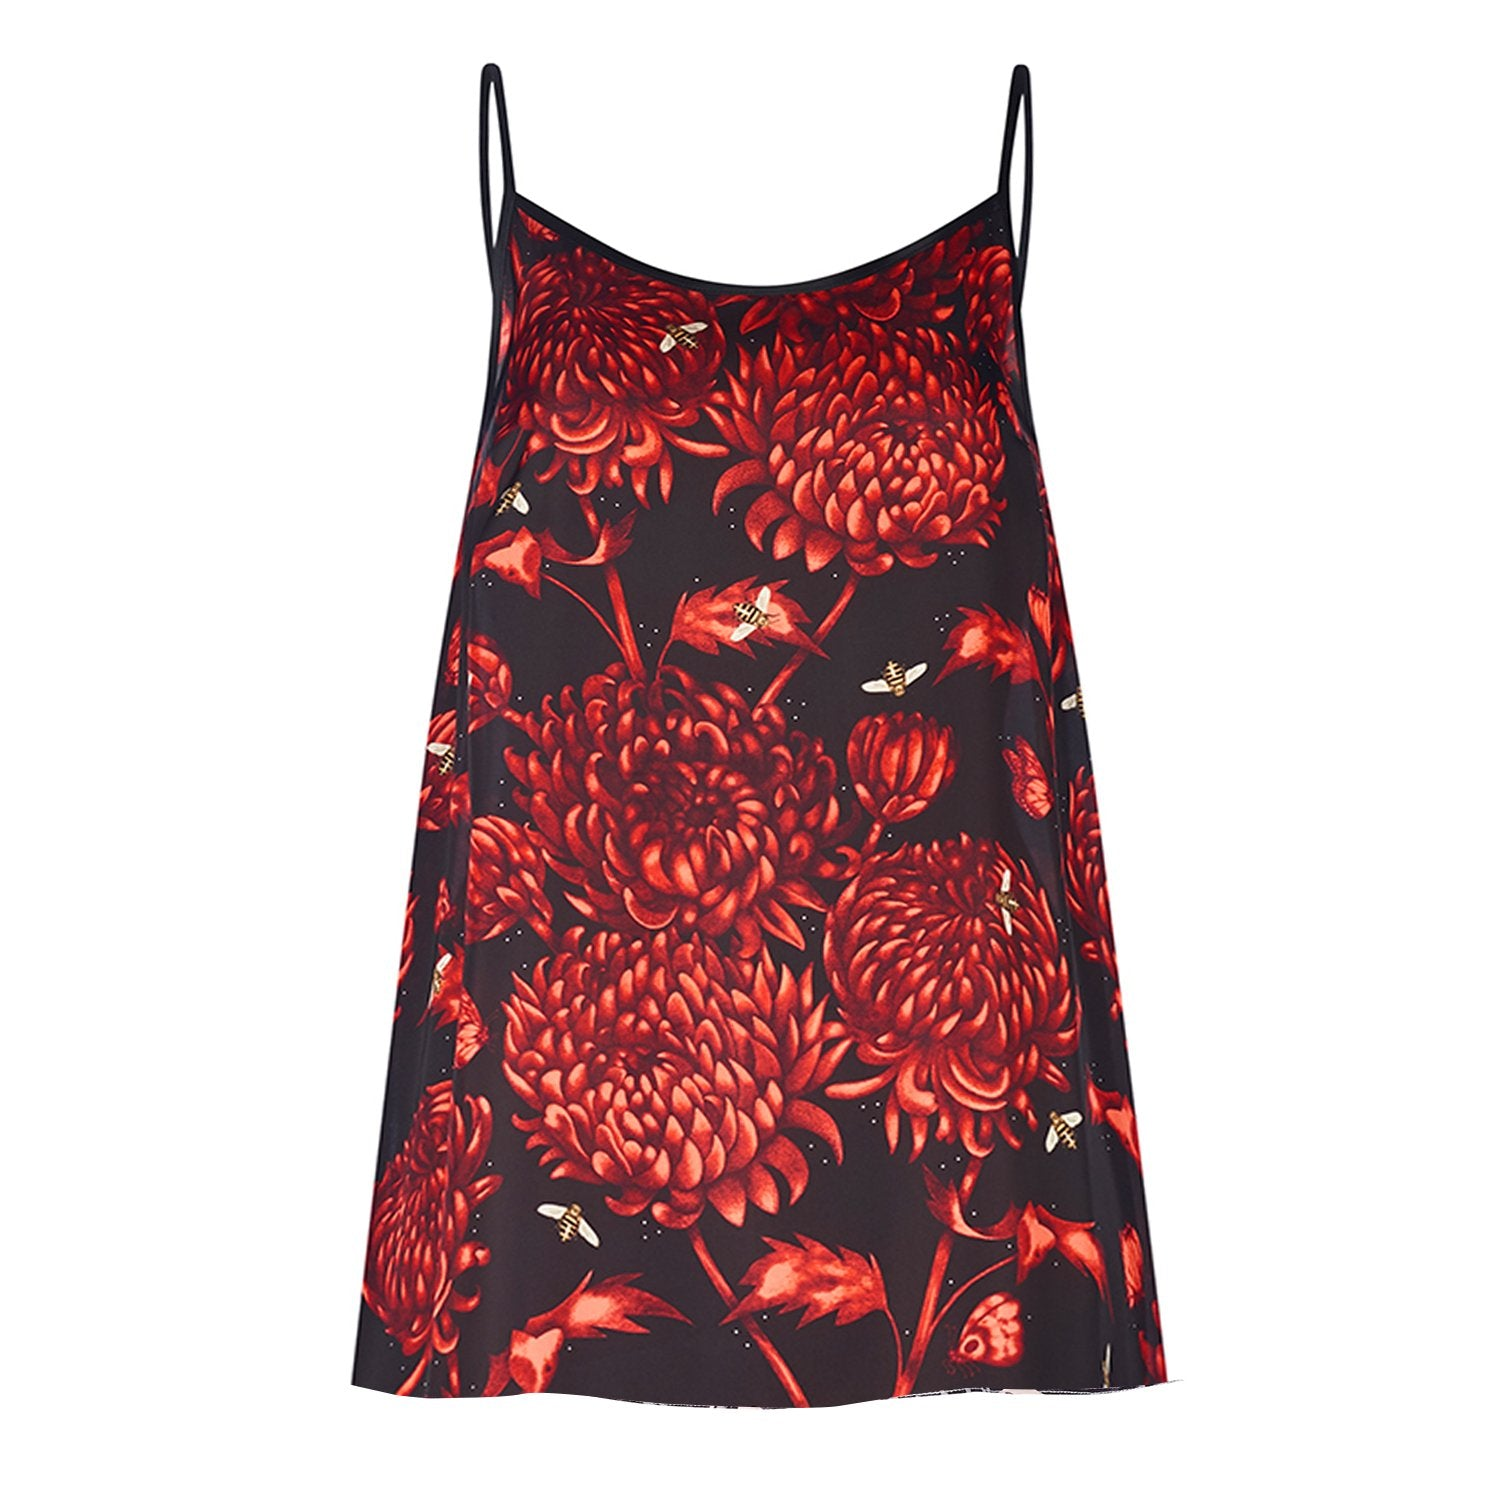 Akai Kiku camisole top featuring detailed hand illustrated floral chrysanthemum print by Louise Coleman